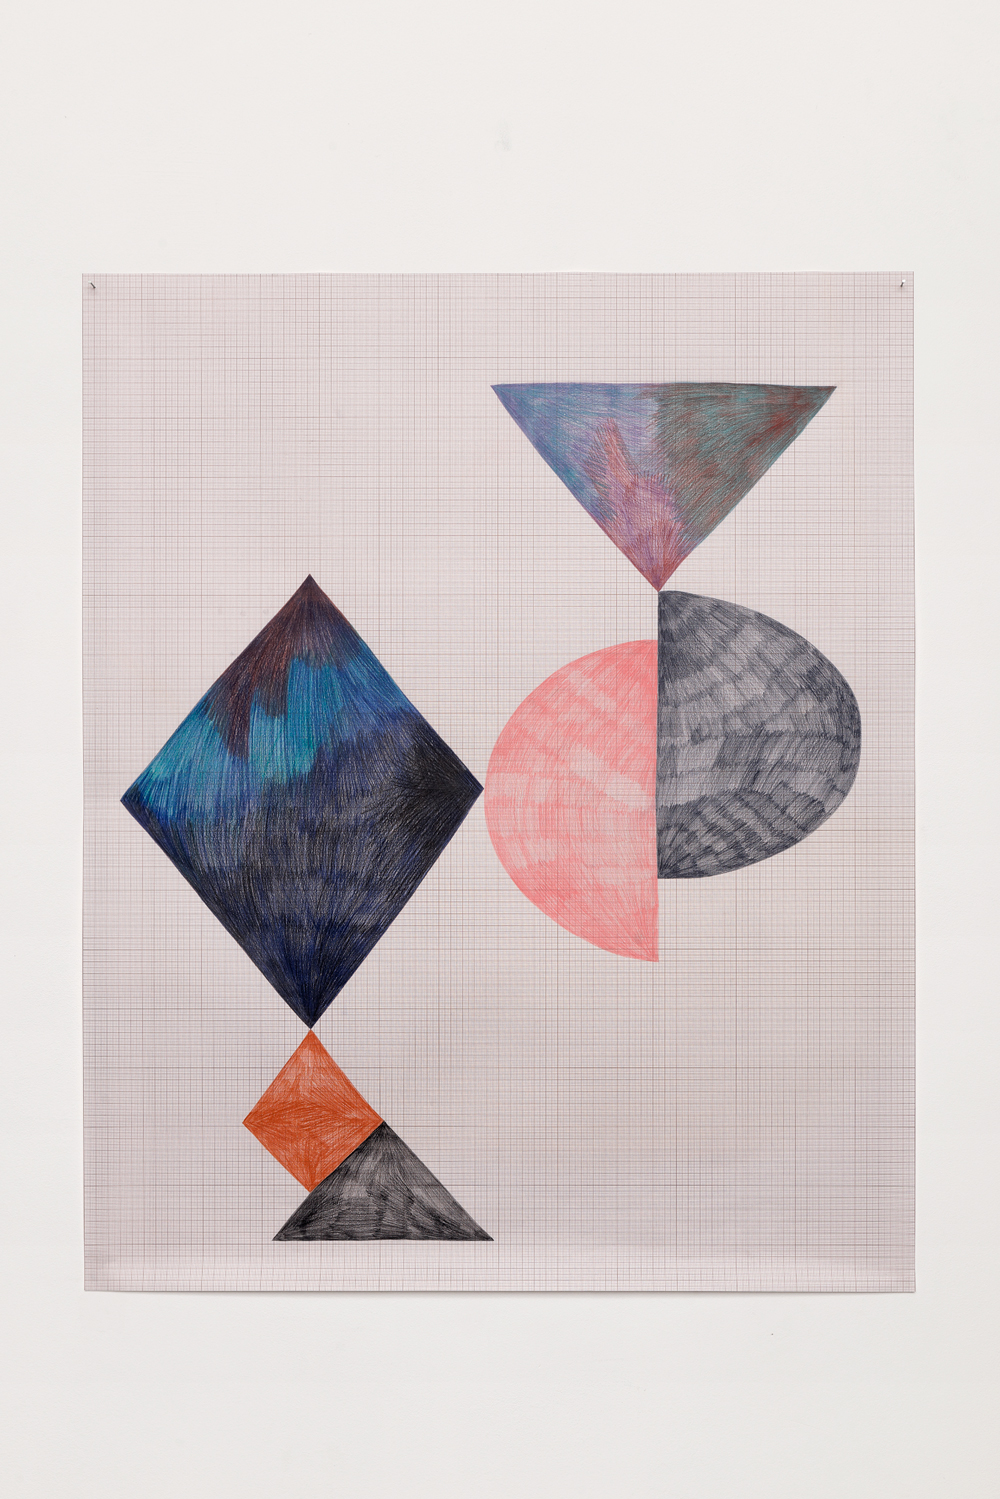 , 2014, Colored pencil on paper, 86 x 70 cm, , unique artwork, Photo: Aurélien Mole